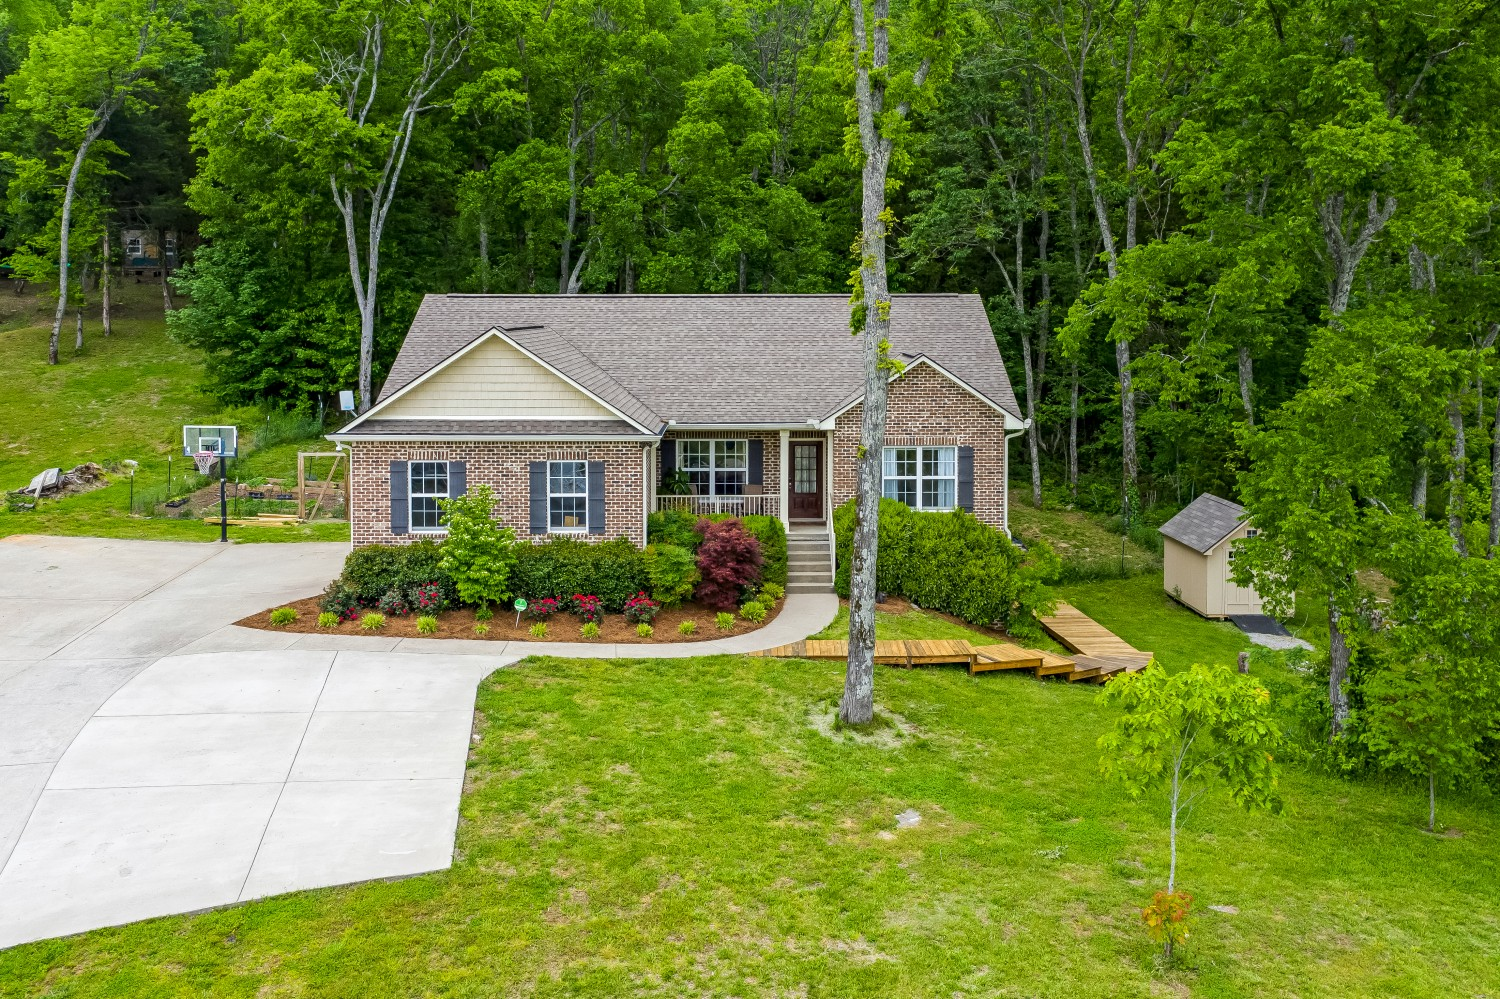 419 Alydar Dr Property Photo - Watertown, TN real estate listing